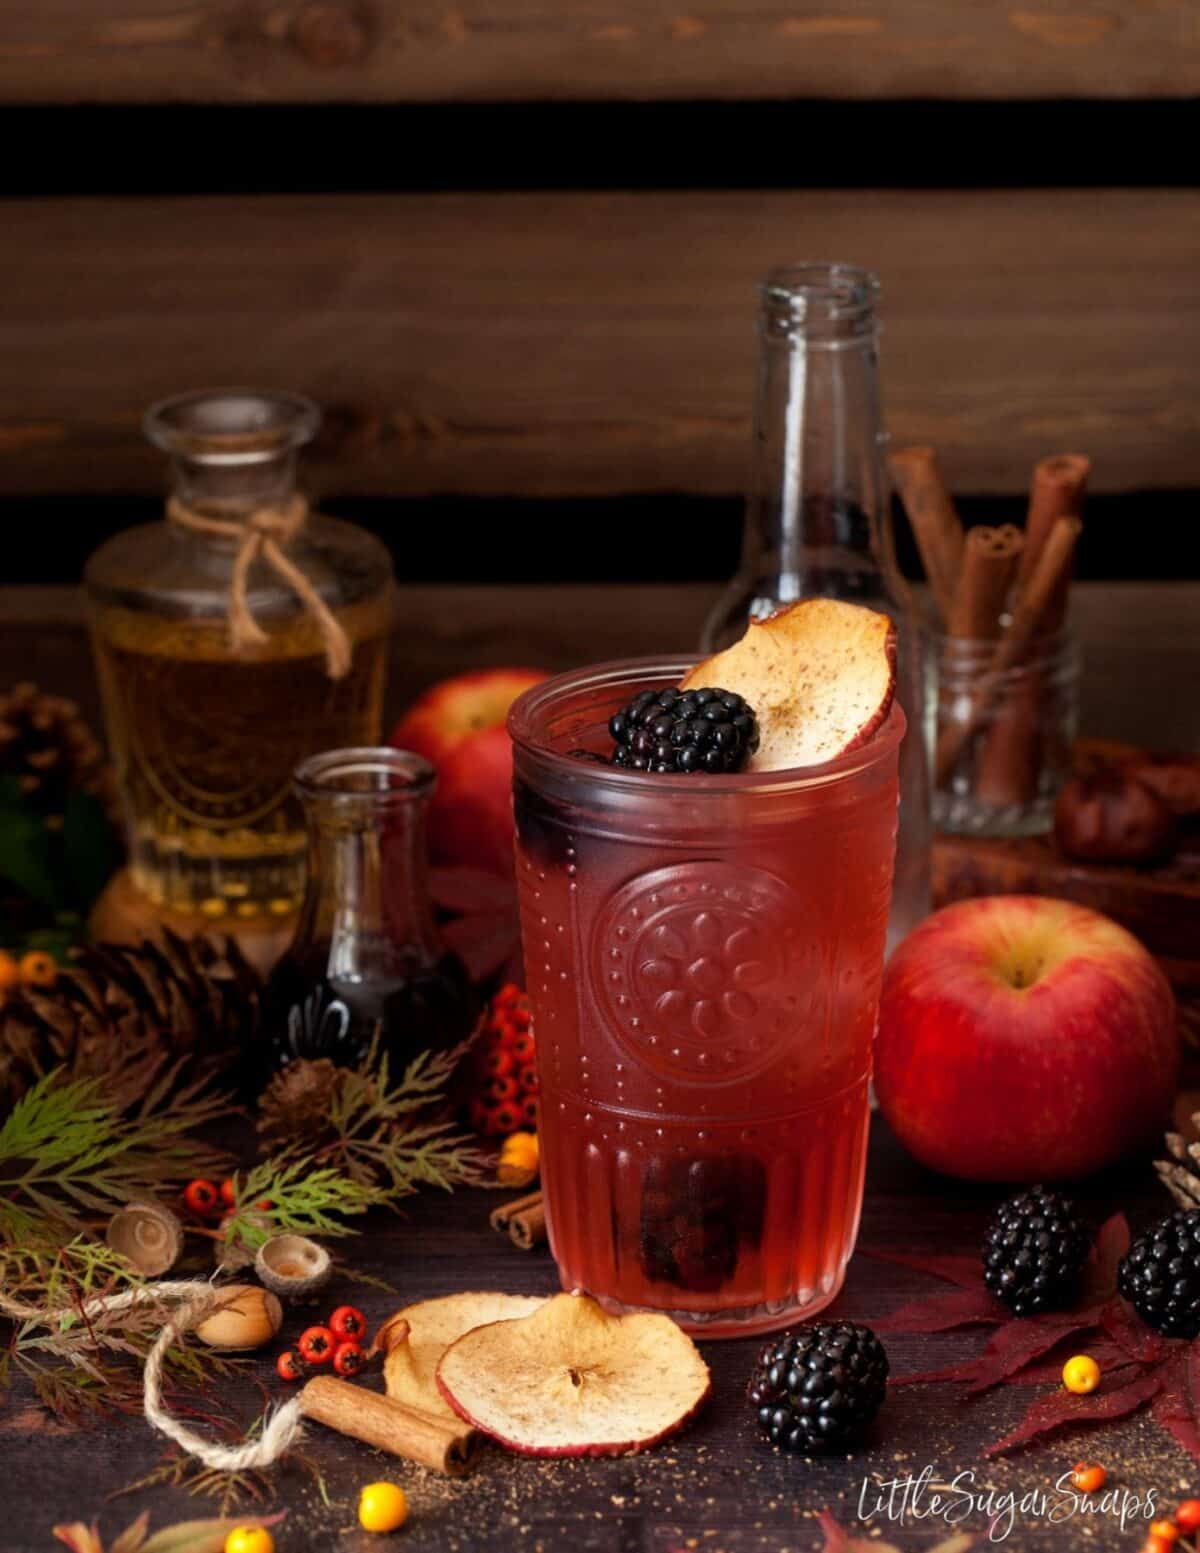 Autumn Blackberry and gin drink decorated with fresh berries and dried apple slices.